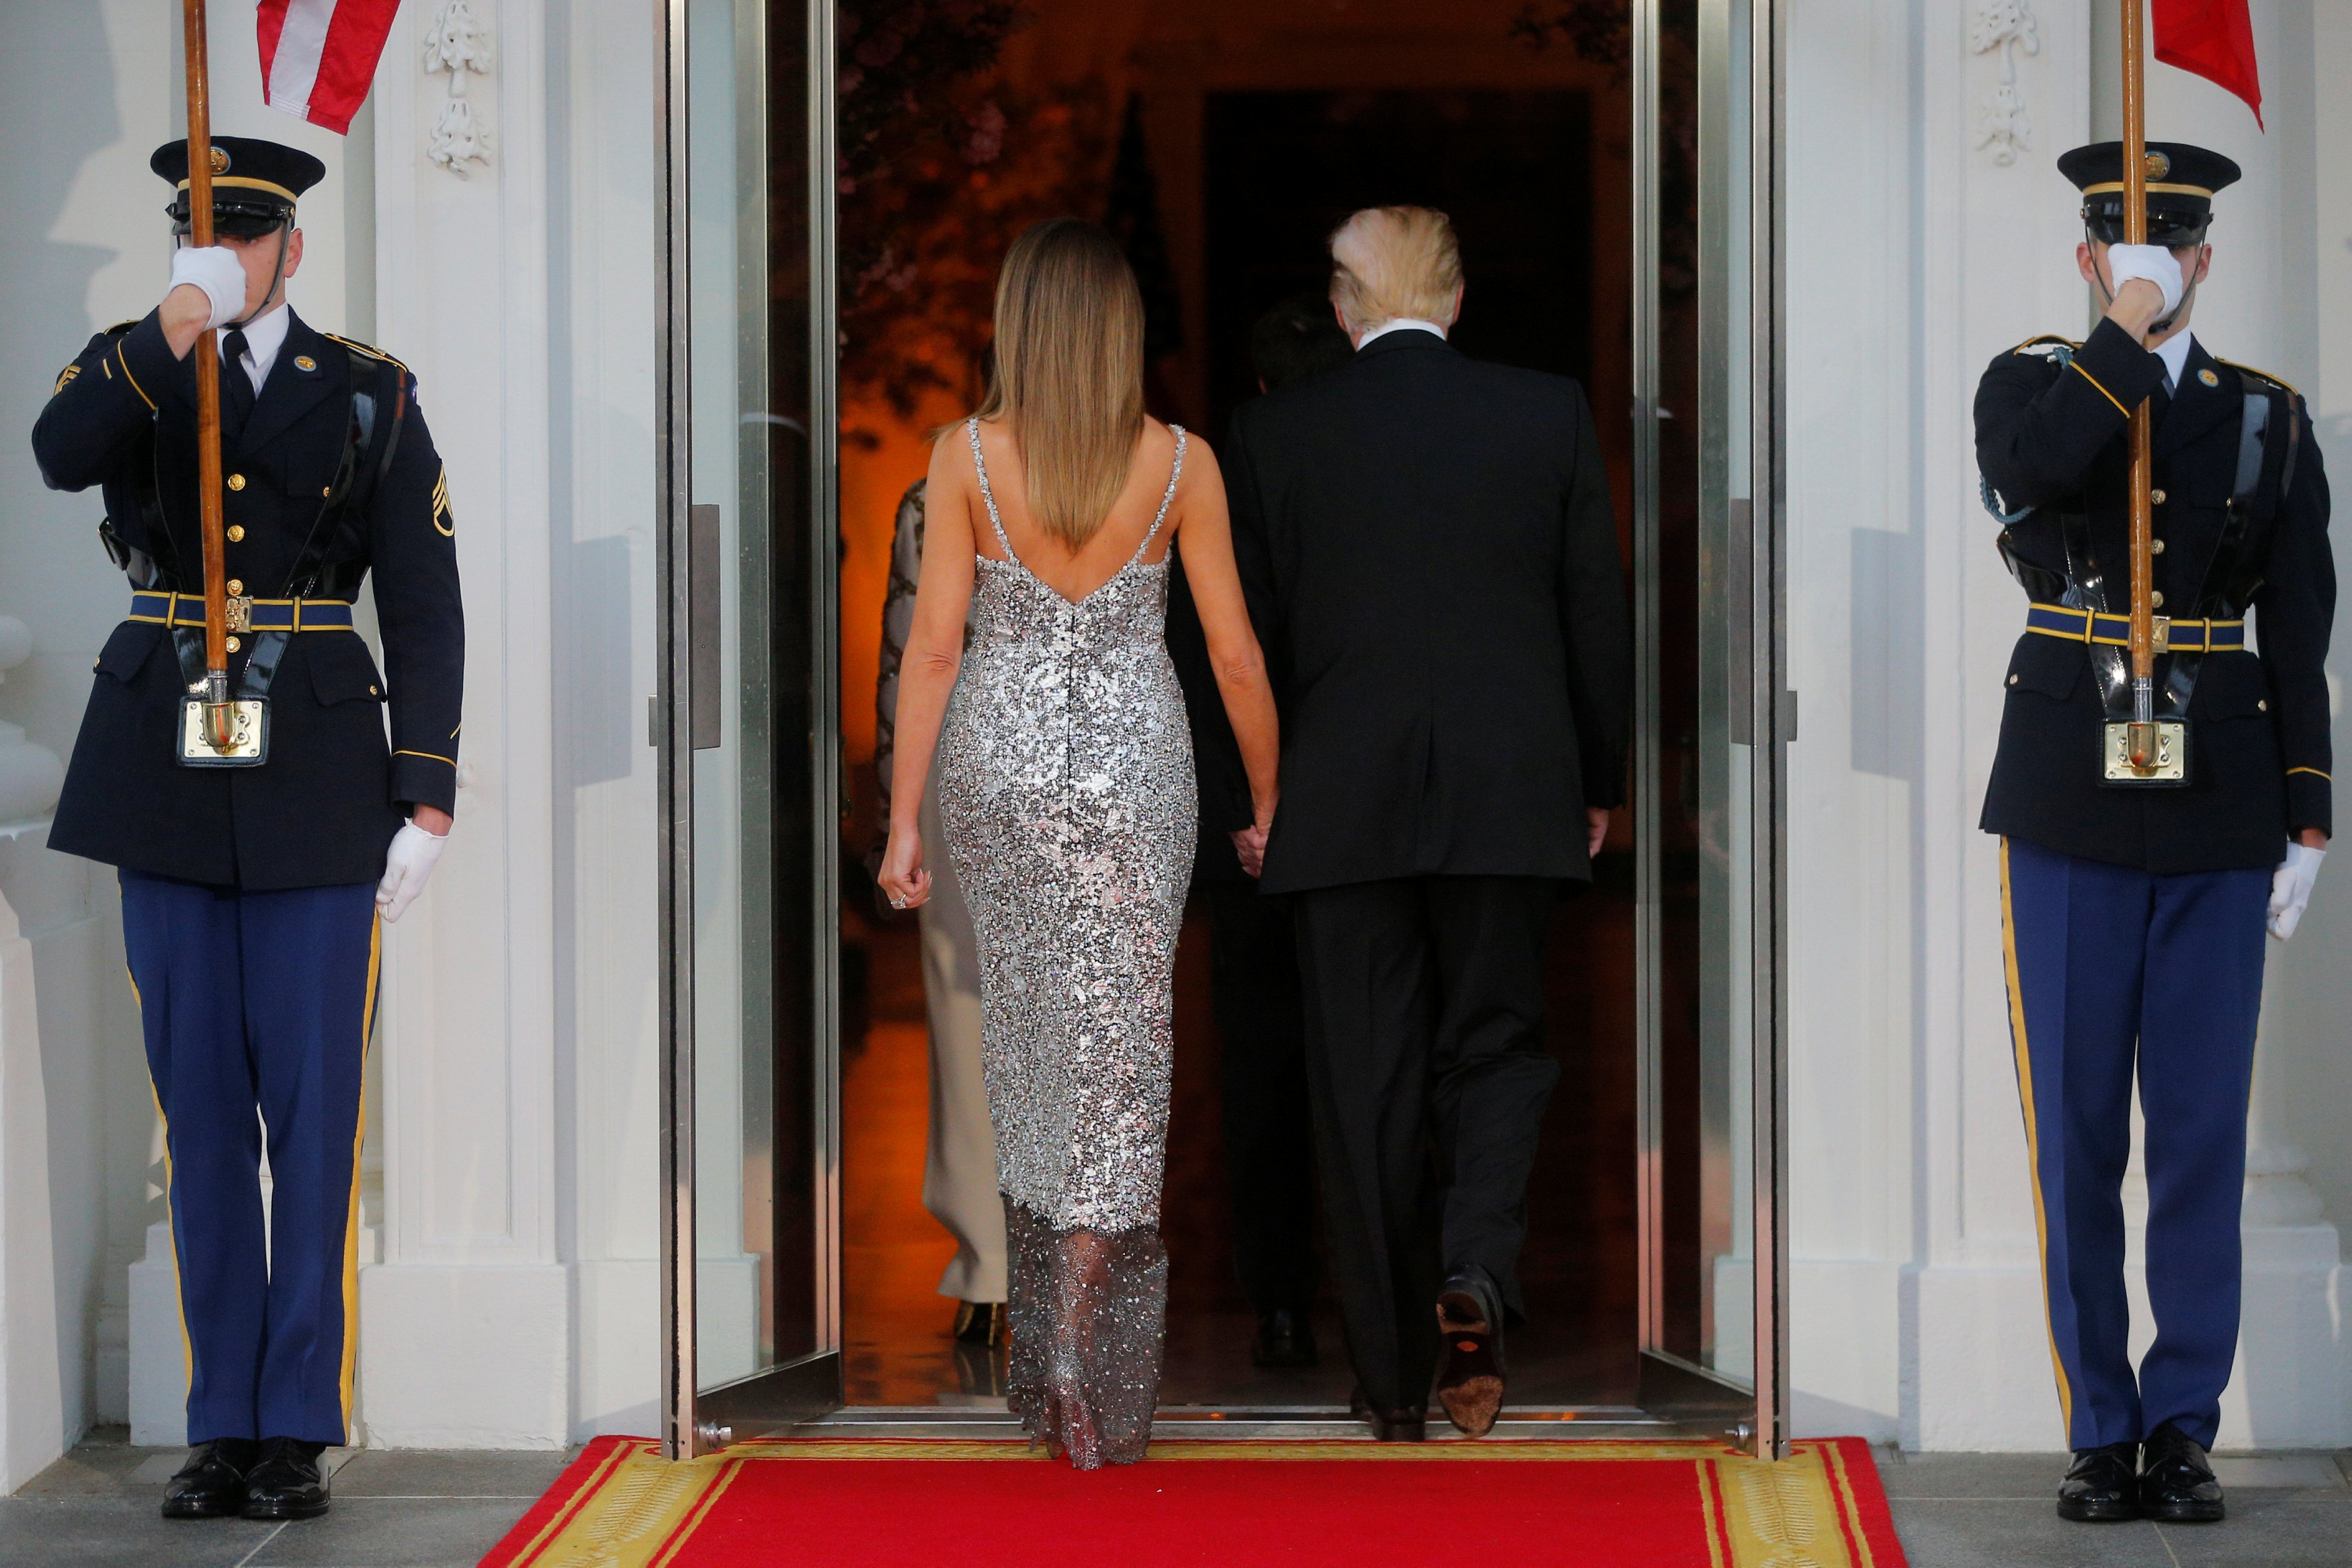 U.S. President Trump and first lady Melania walk into the White House after welcoming French President Macron and his wife for a State Dinner in Washington